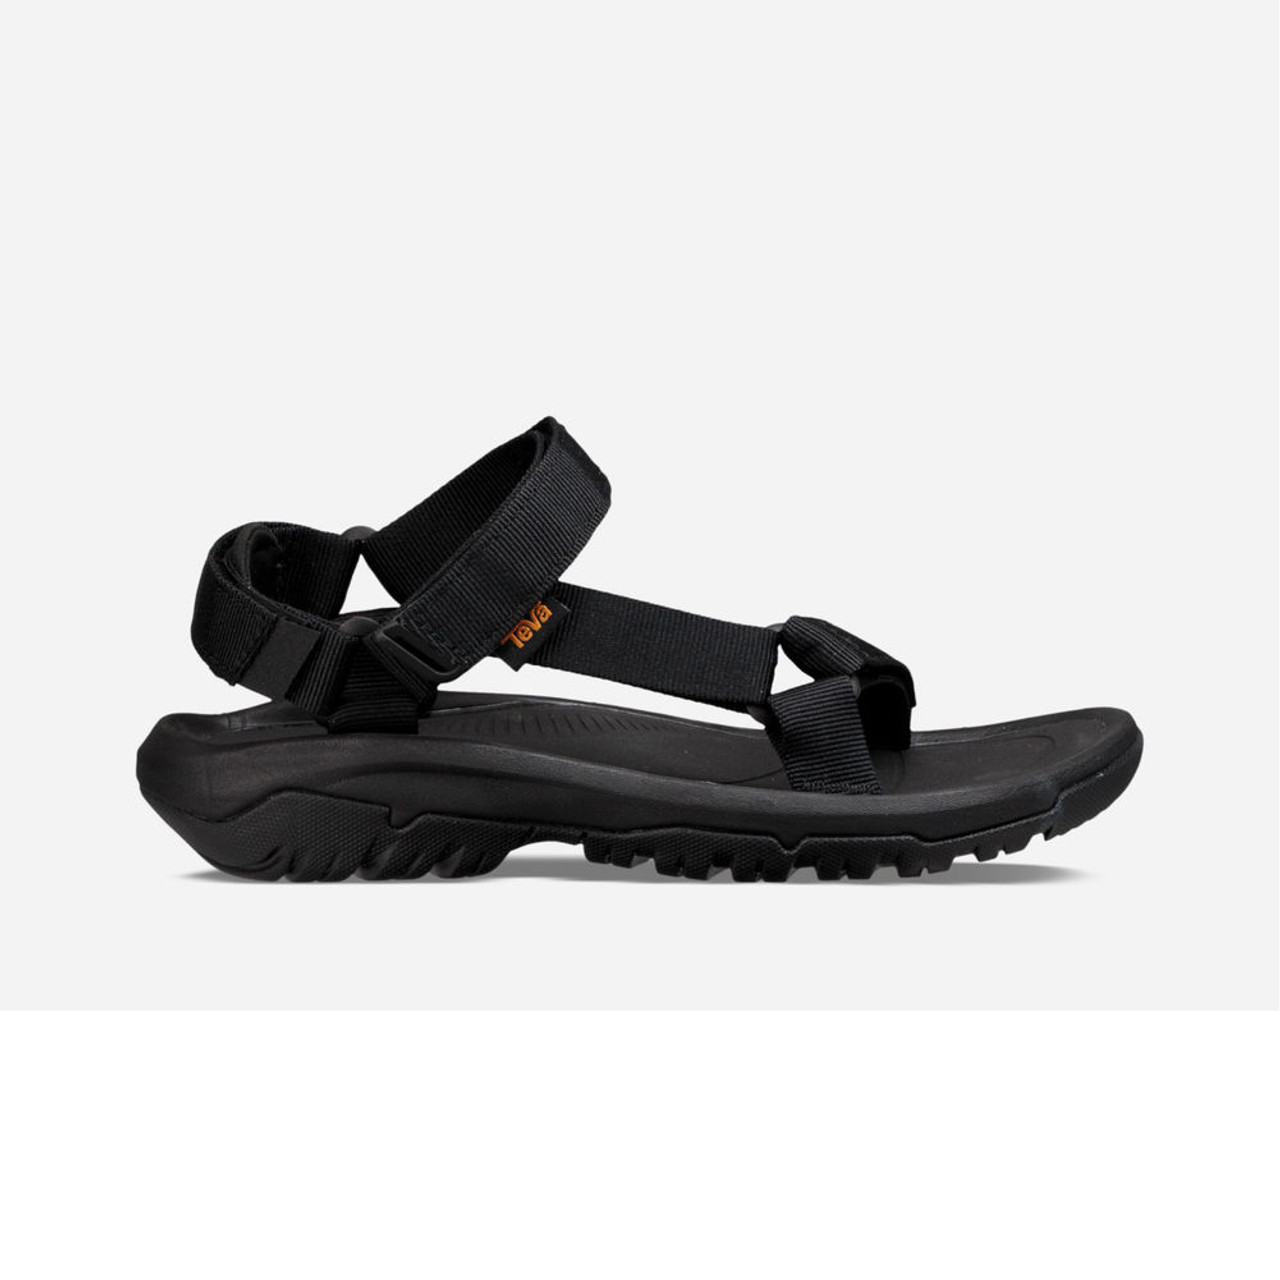 482102e988af Teva Women s Hurricane XLT 2 Sport Sandal Lago Black - Shop now   Shoolu.com